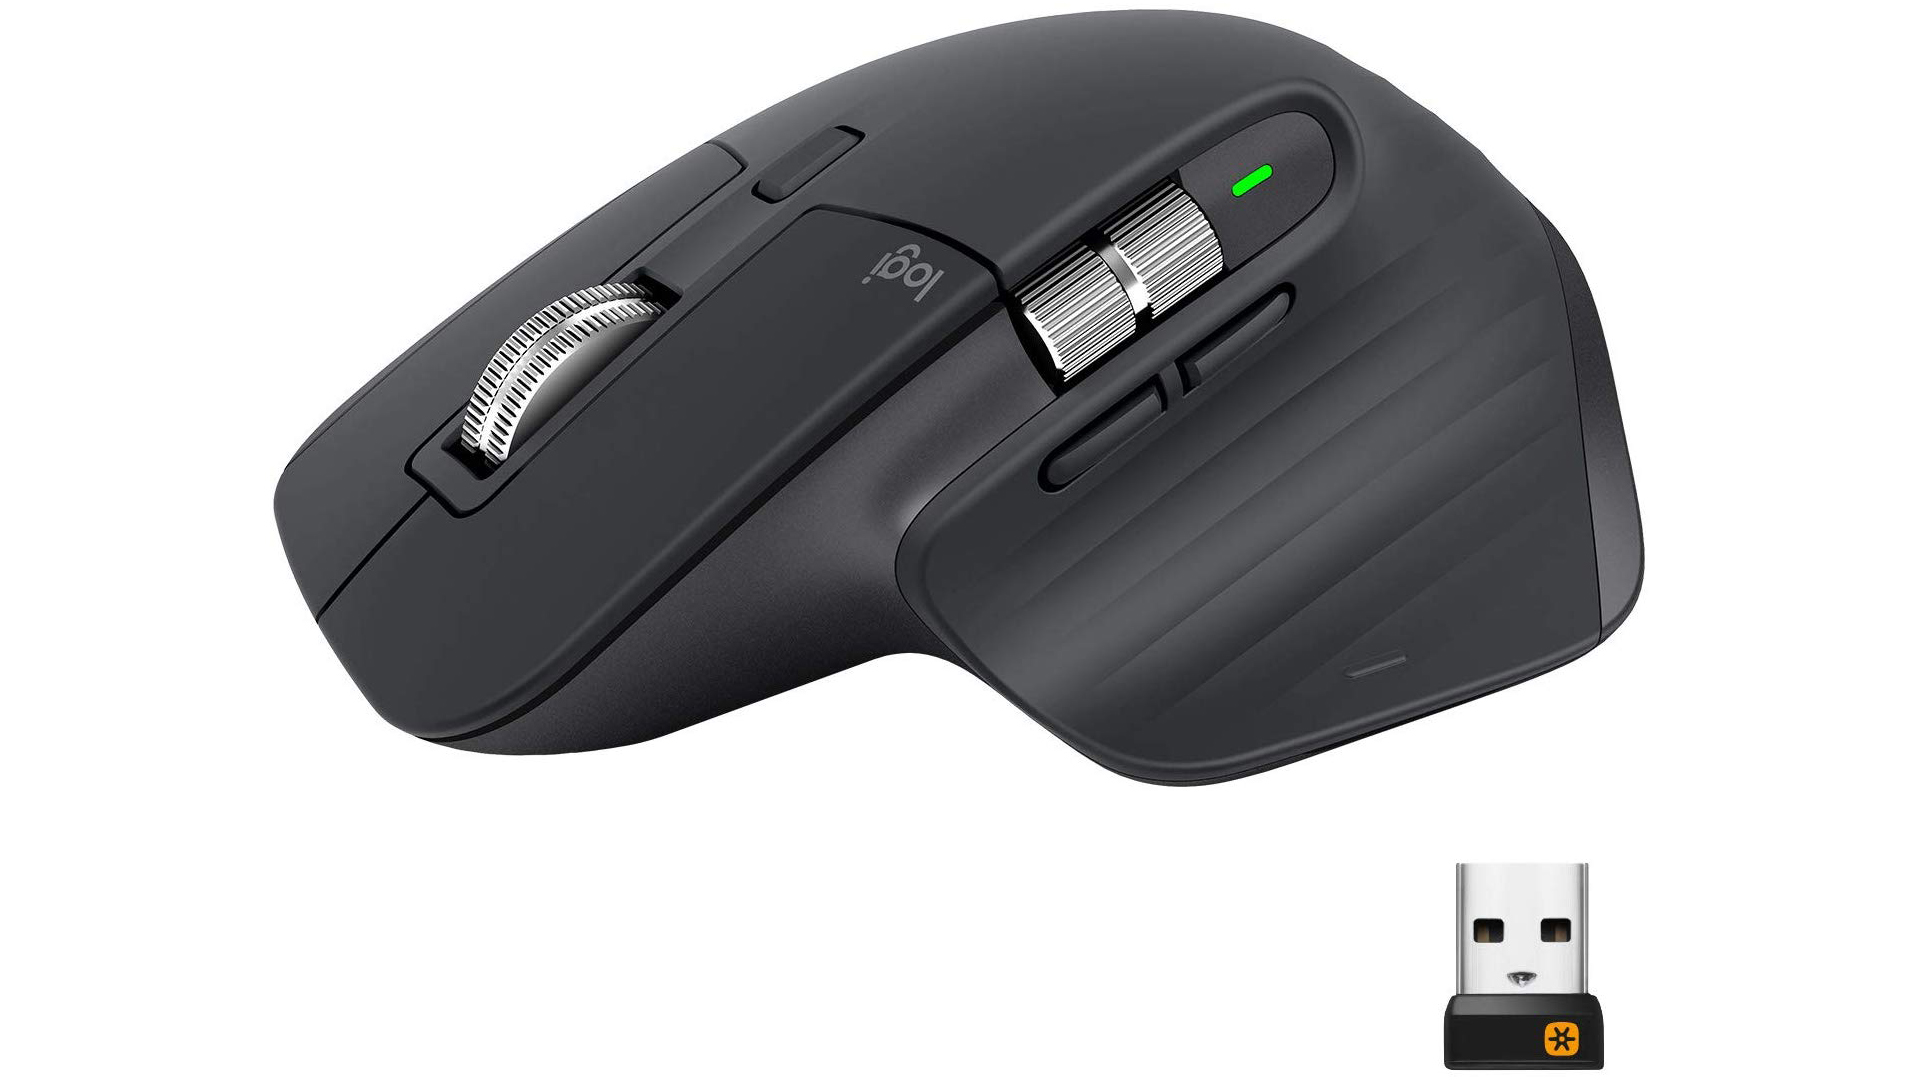 Best wireless mouse: Logitech MX Master 3